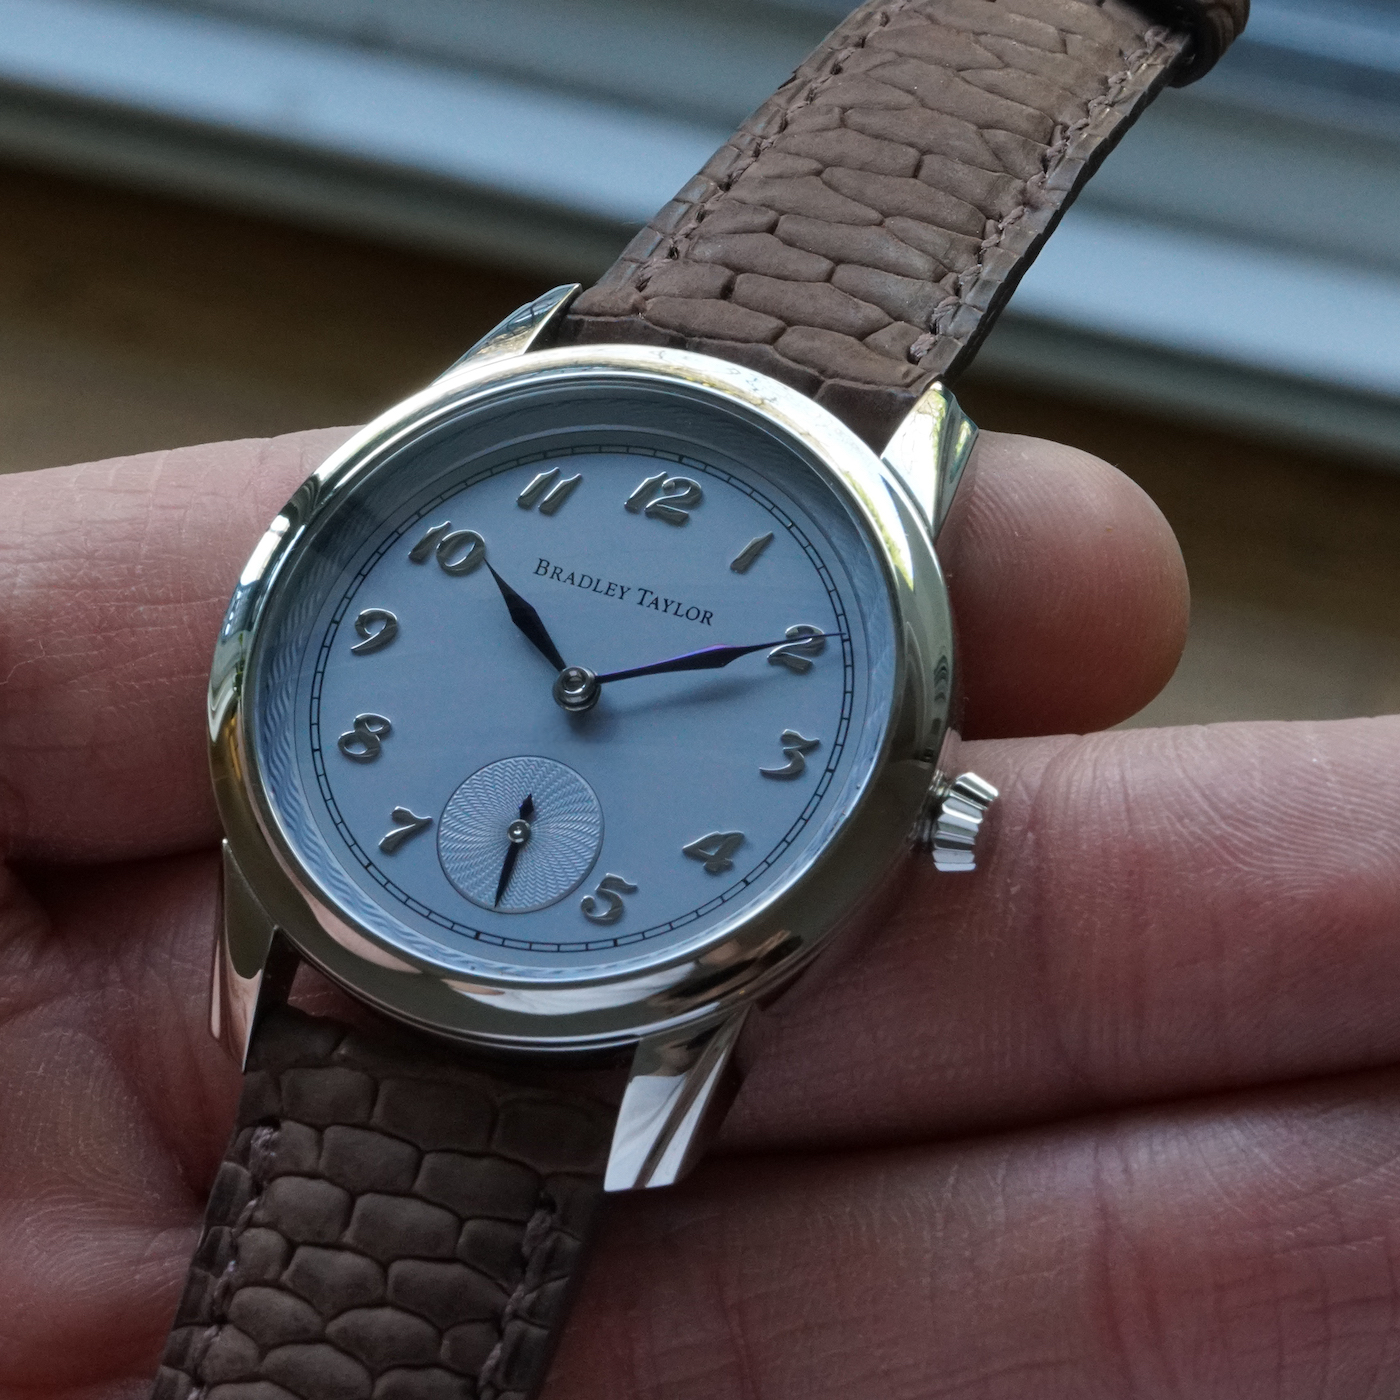 Bradley Taylor Paragon Independent Watchmaker Canada